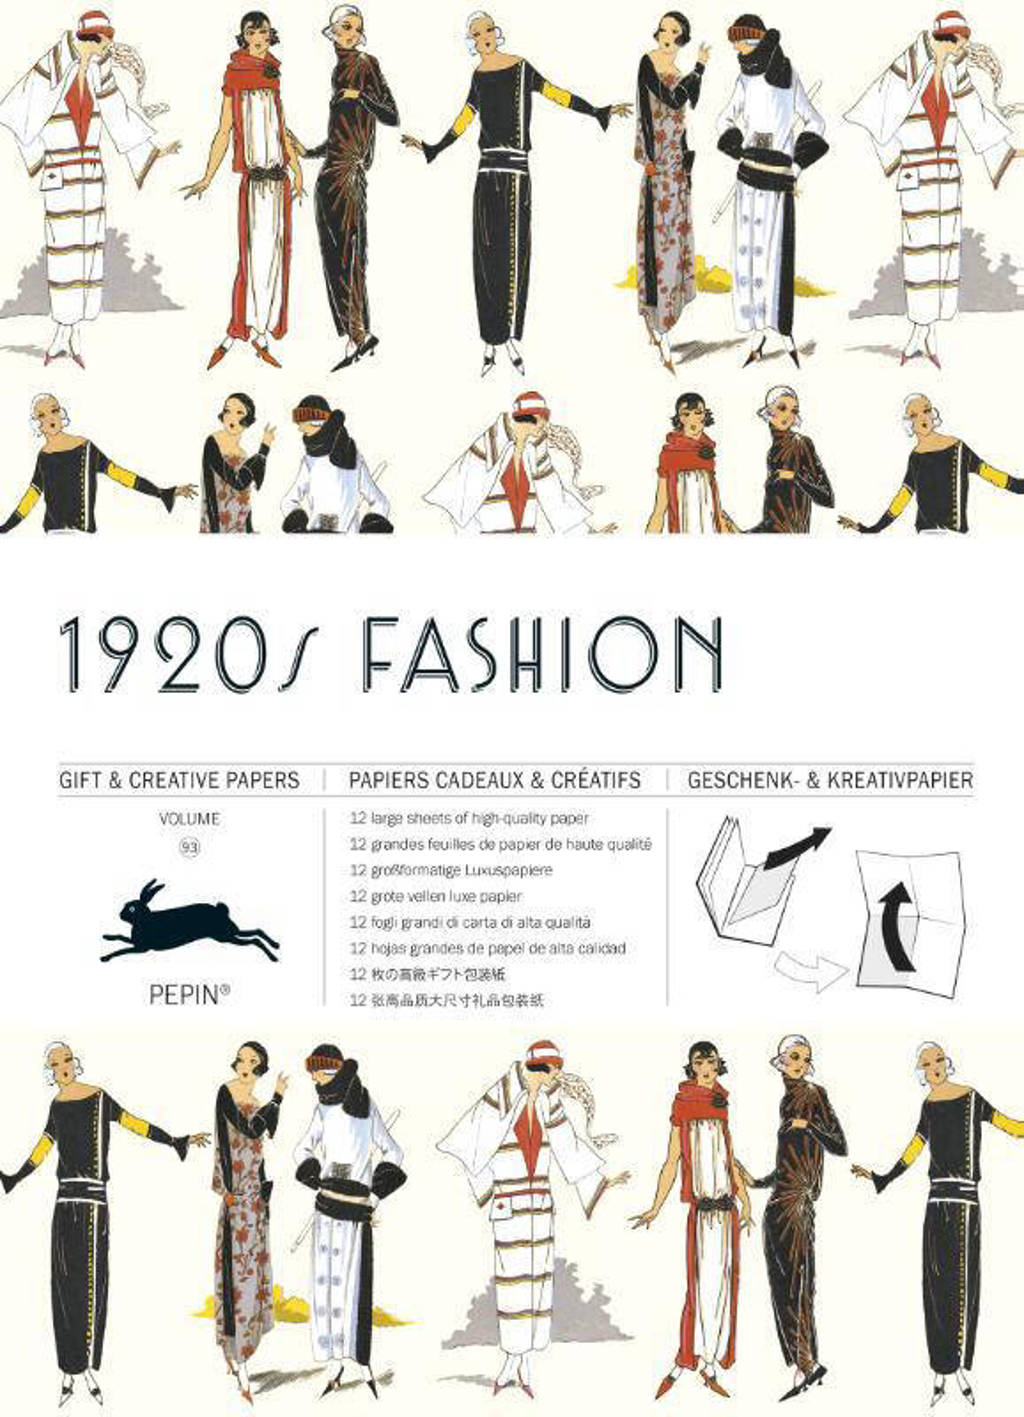 Gift & creative papers: 1920s Fashion Volume 93 - Pepin van Roojen